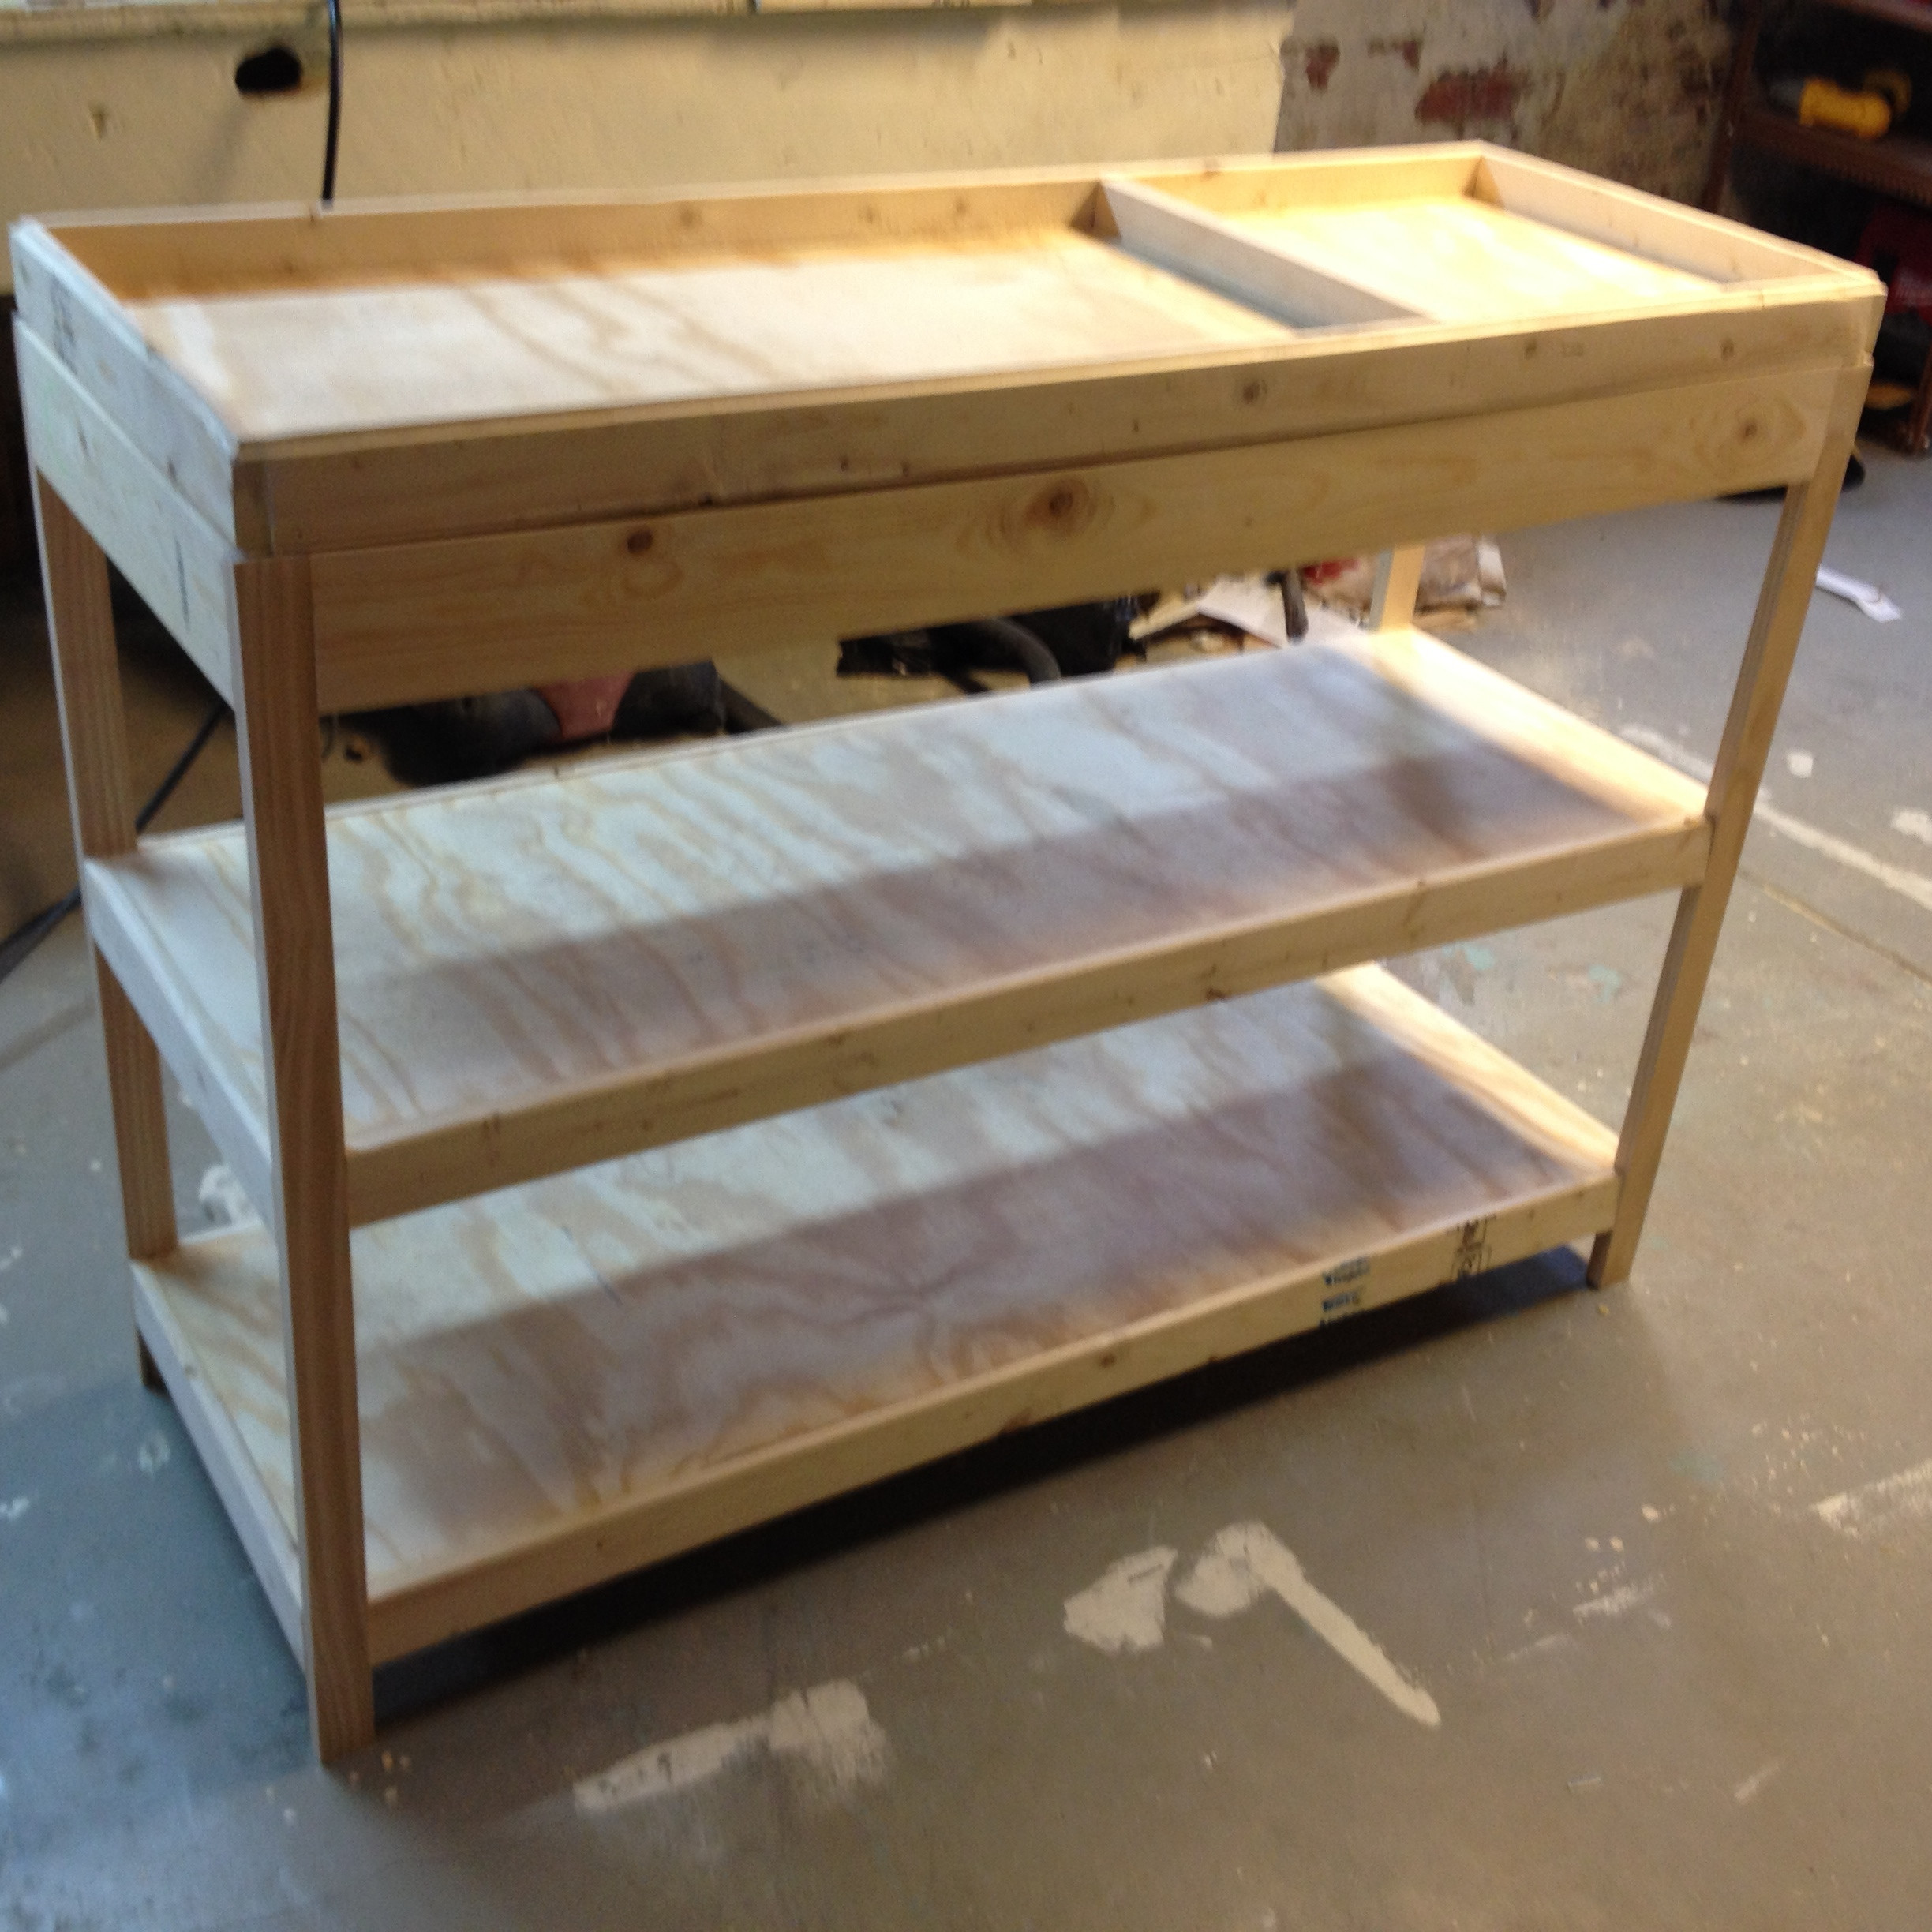 Best ideas about DIY Baby Changing Table . Save or Pin Building a Changing Table – Frugal Living Now.